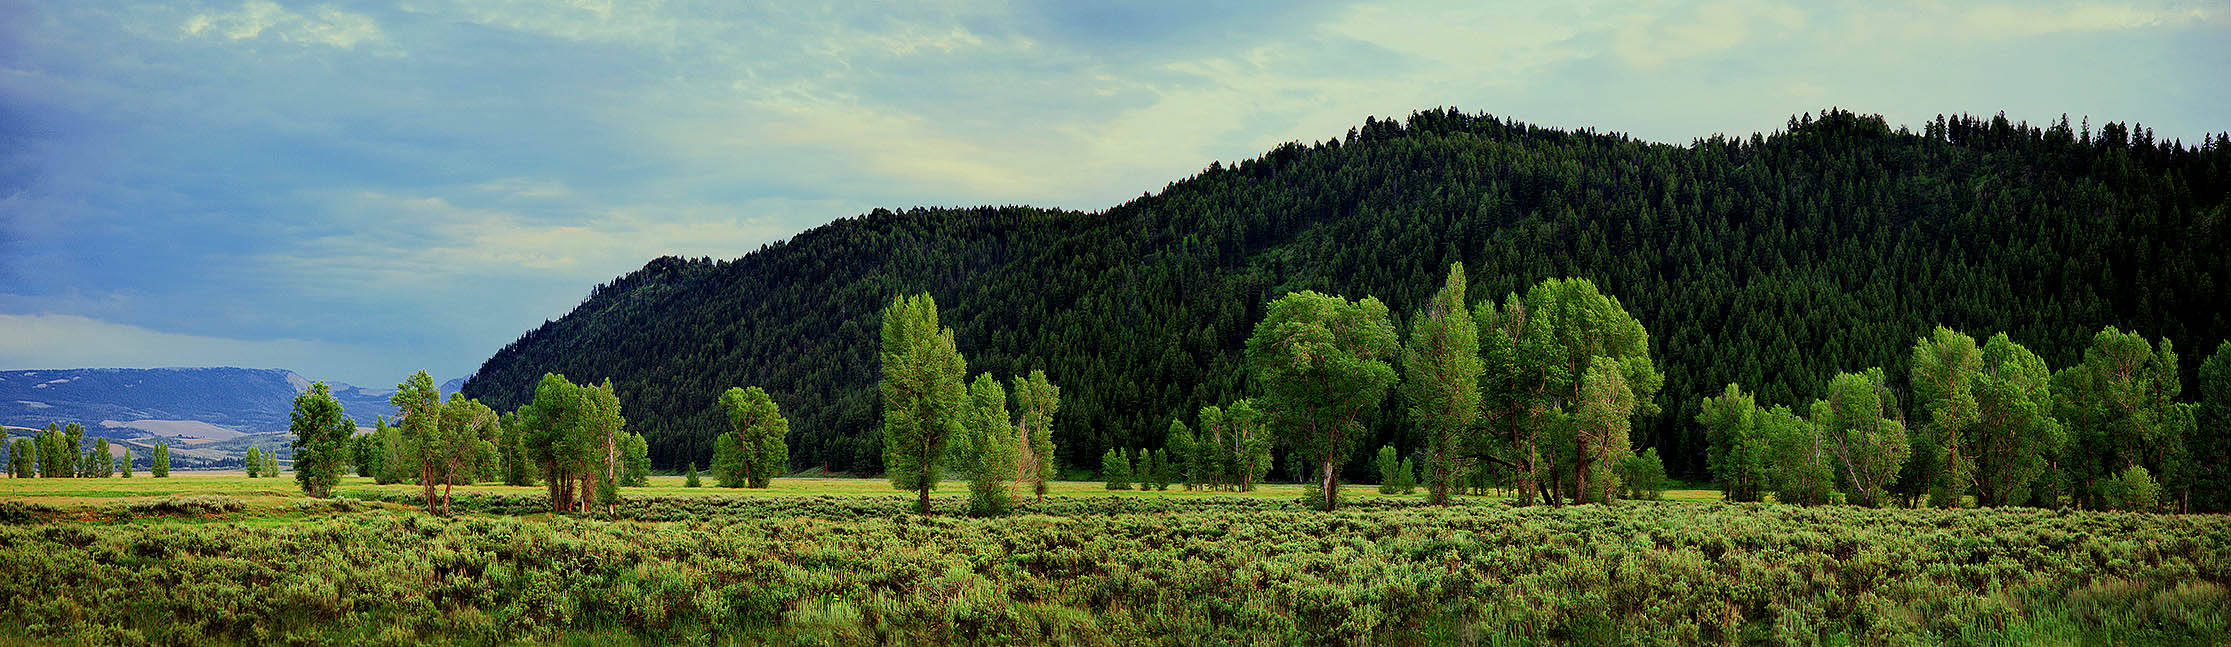 Wyoming_TreeLine sharp0.3 2231px 07